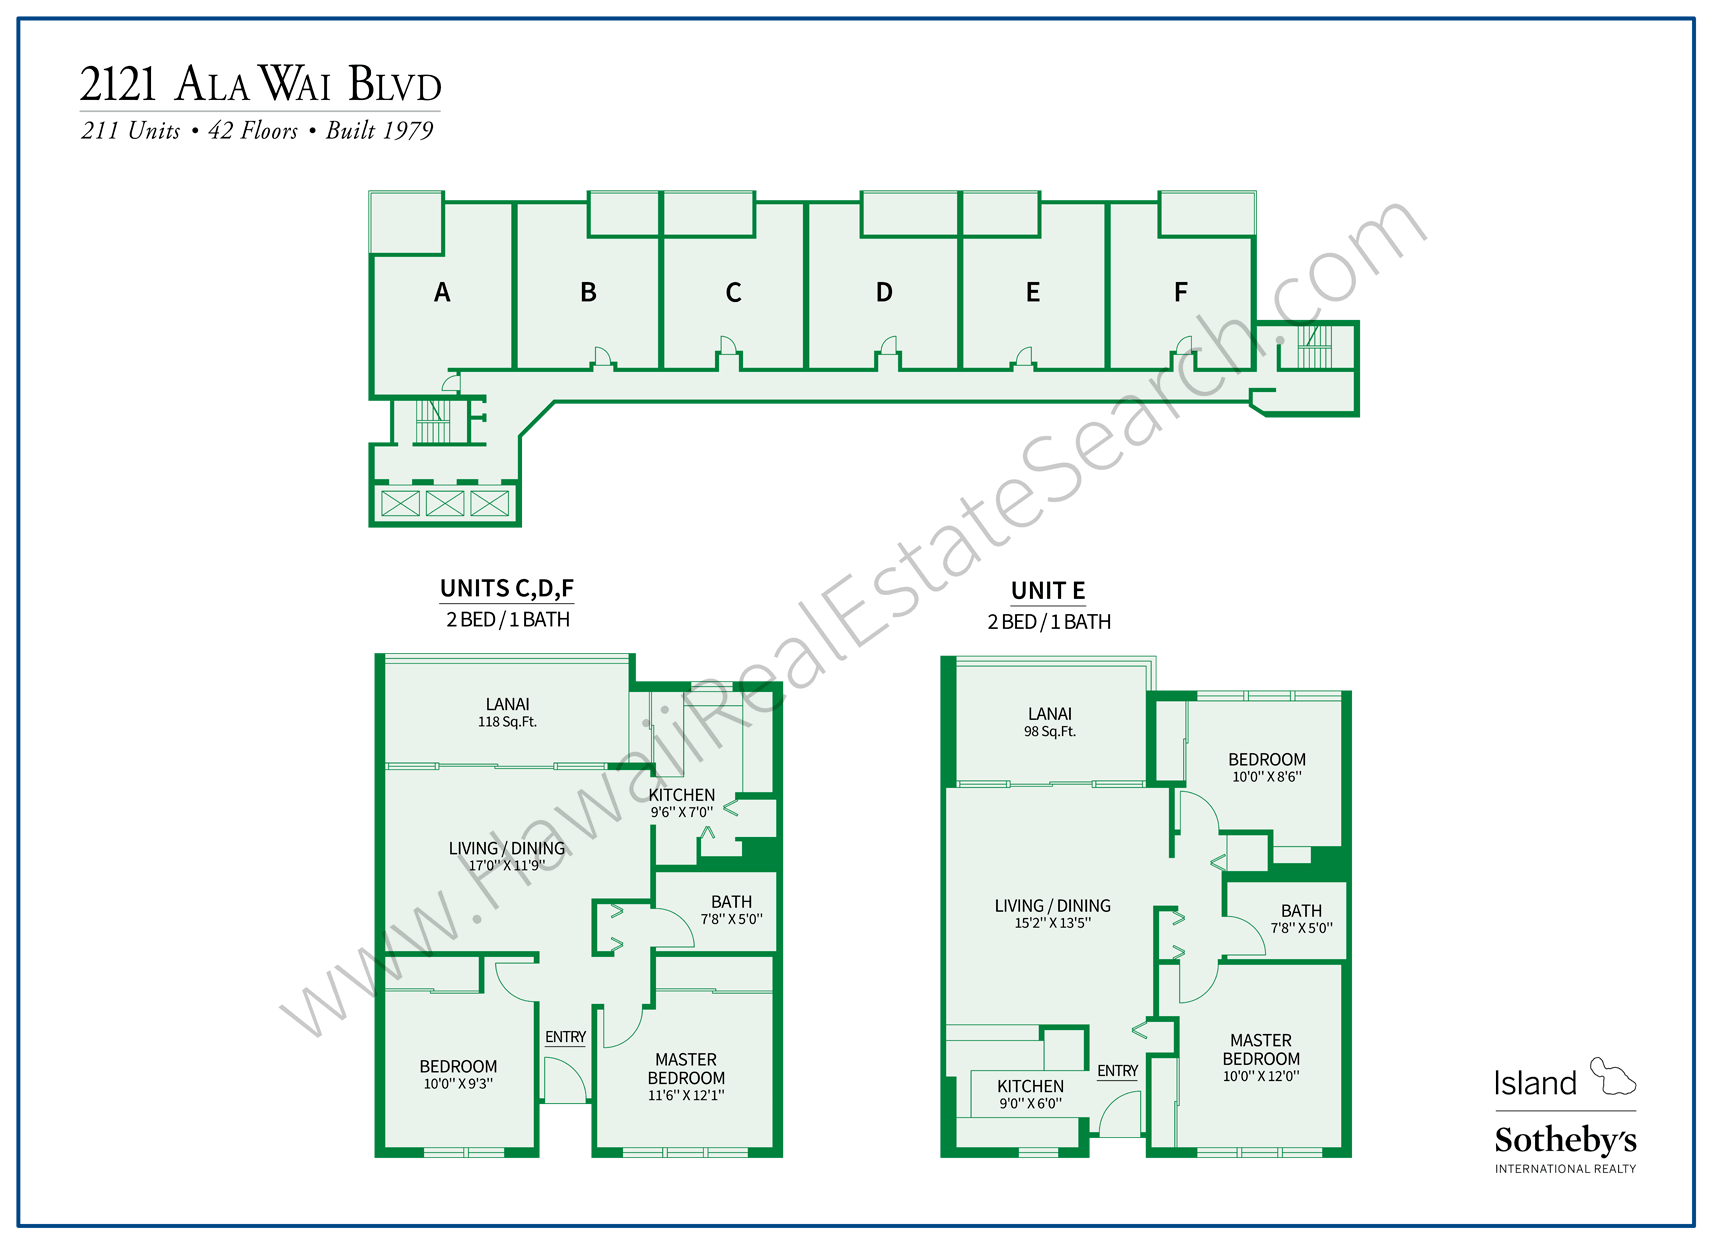 2121 Ala Wai Map with Floor Plans